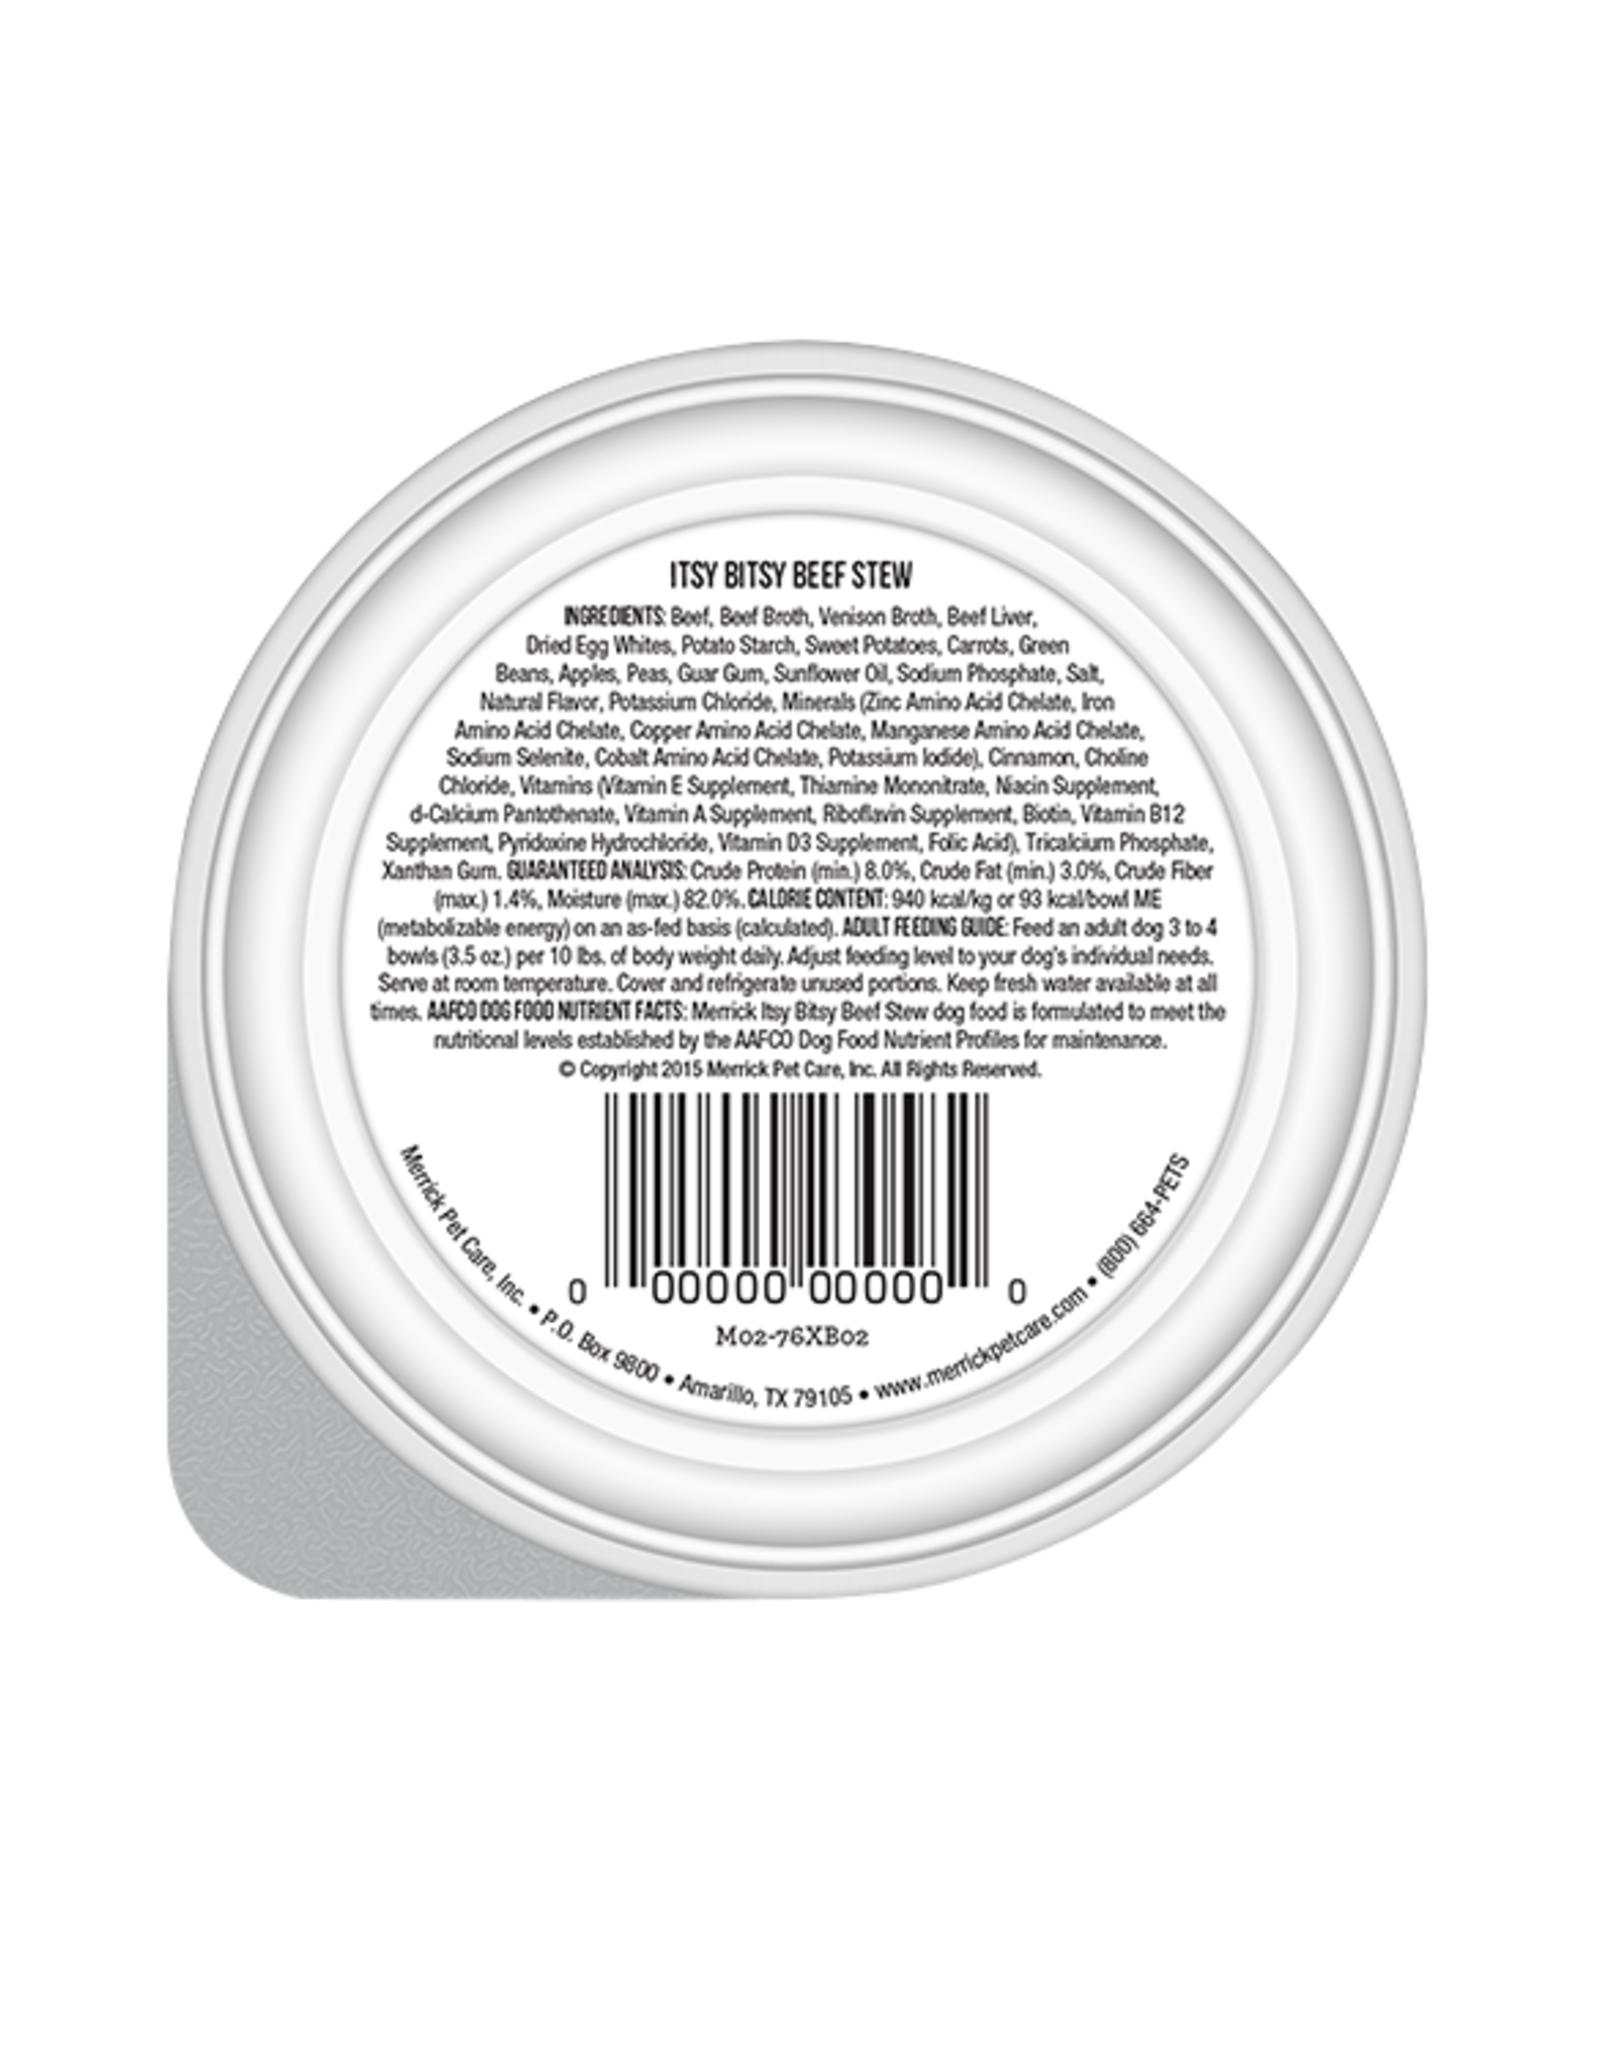 MERRICK PET CARE, INC. MERRICK DOG LIL' PLATES ITSY BITSY BEEF STEW 3.5 OZ TRAY CASE OF 12